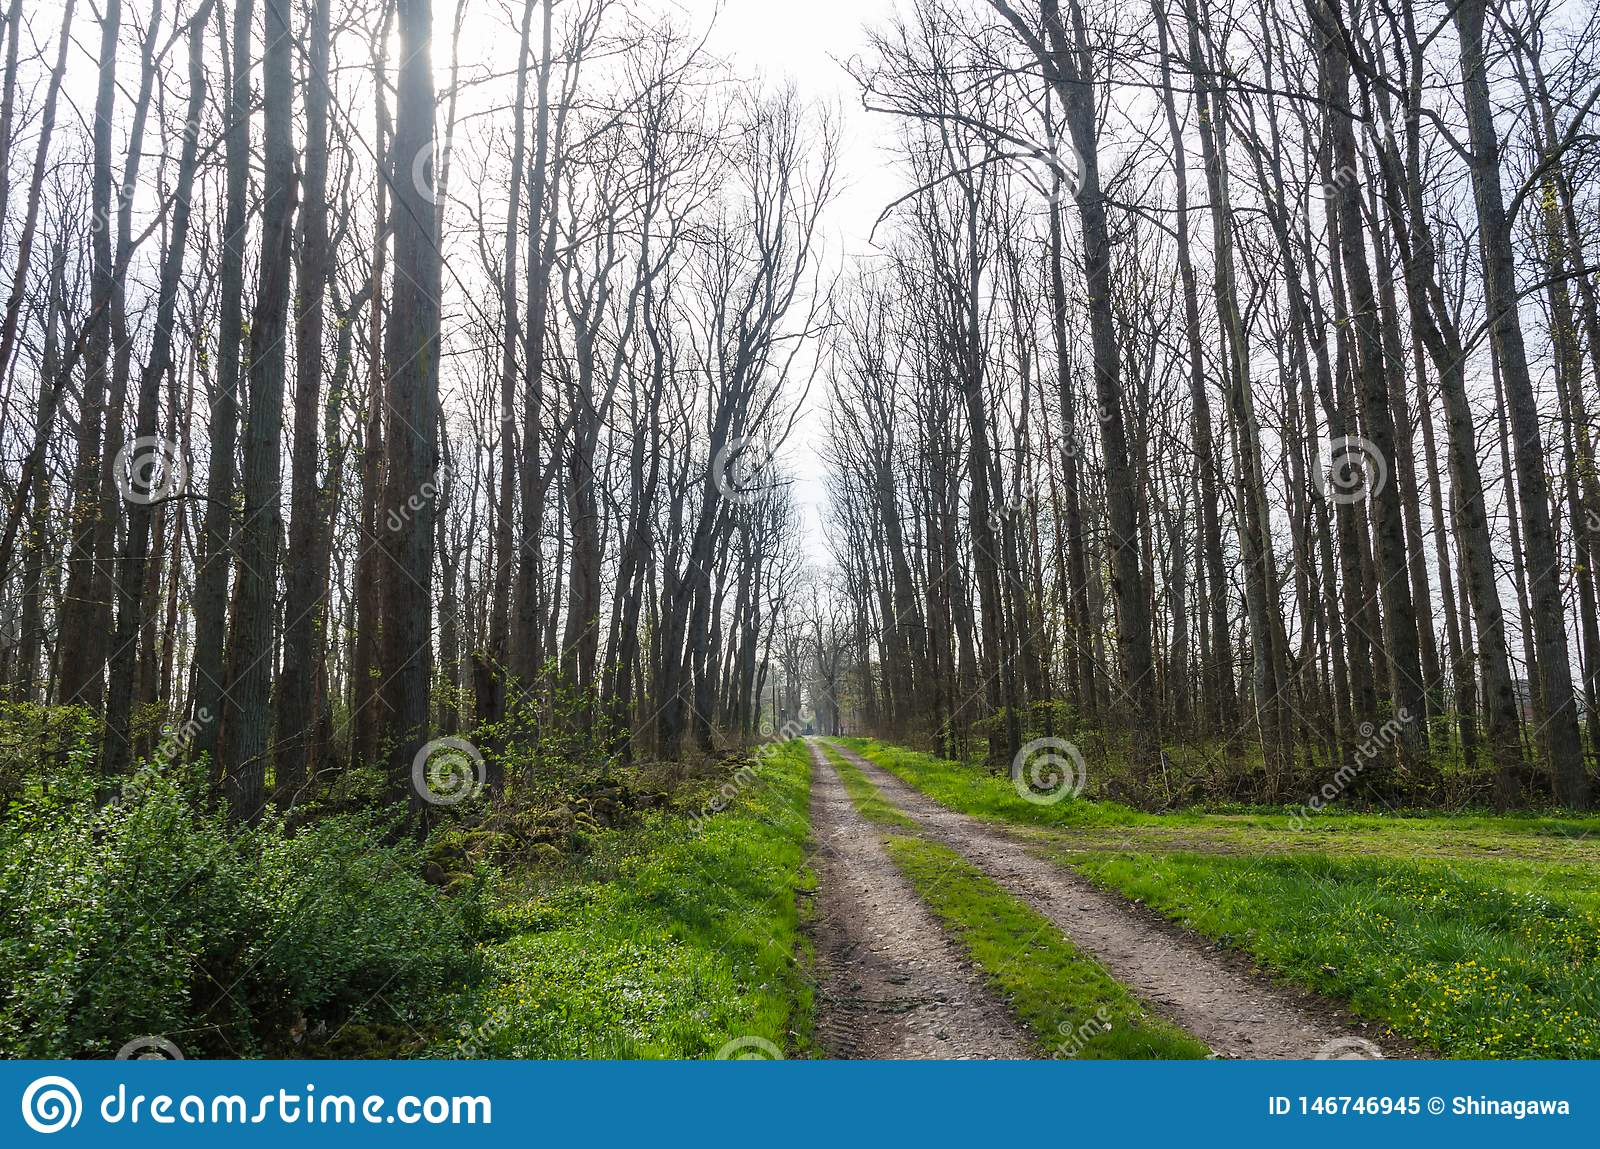 Country road through an elm tree forest with tall bare trees